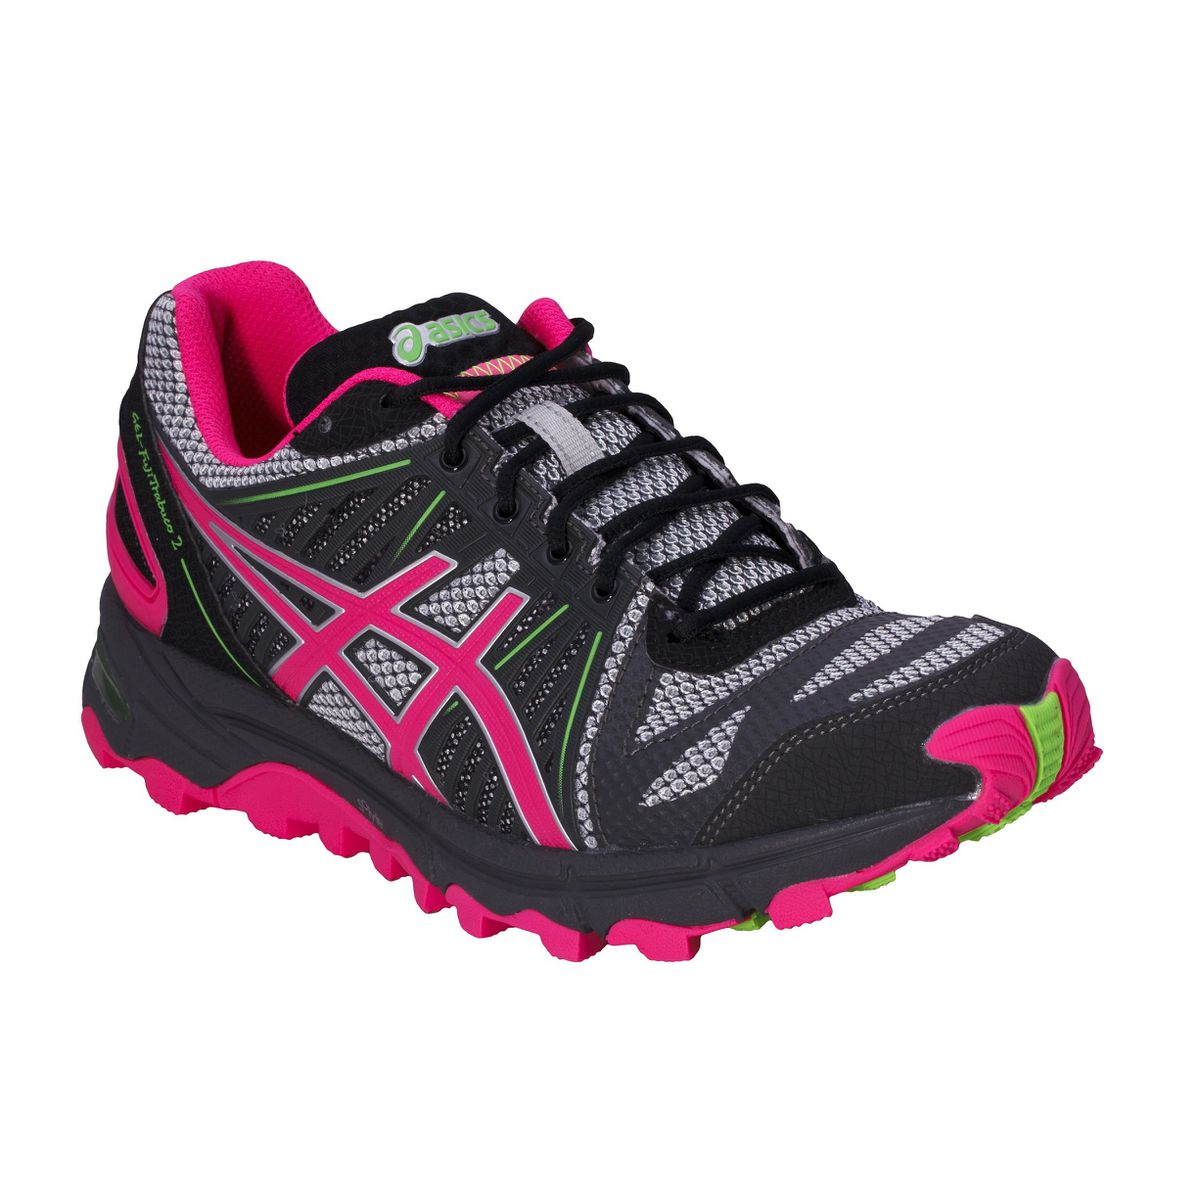 Womens Running Shoes South Africa 62